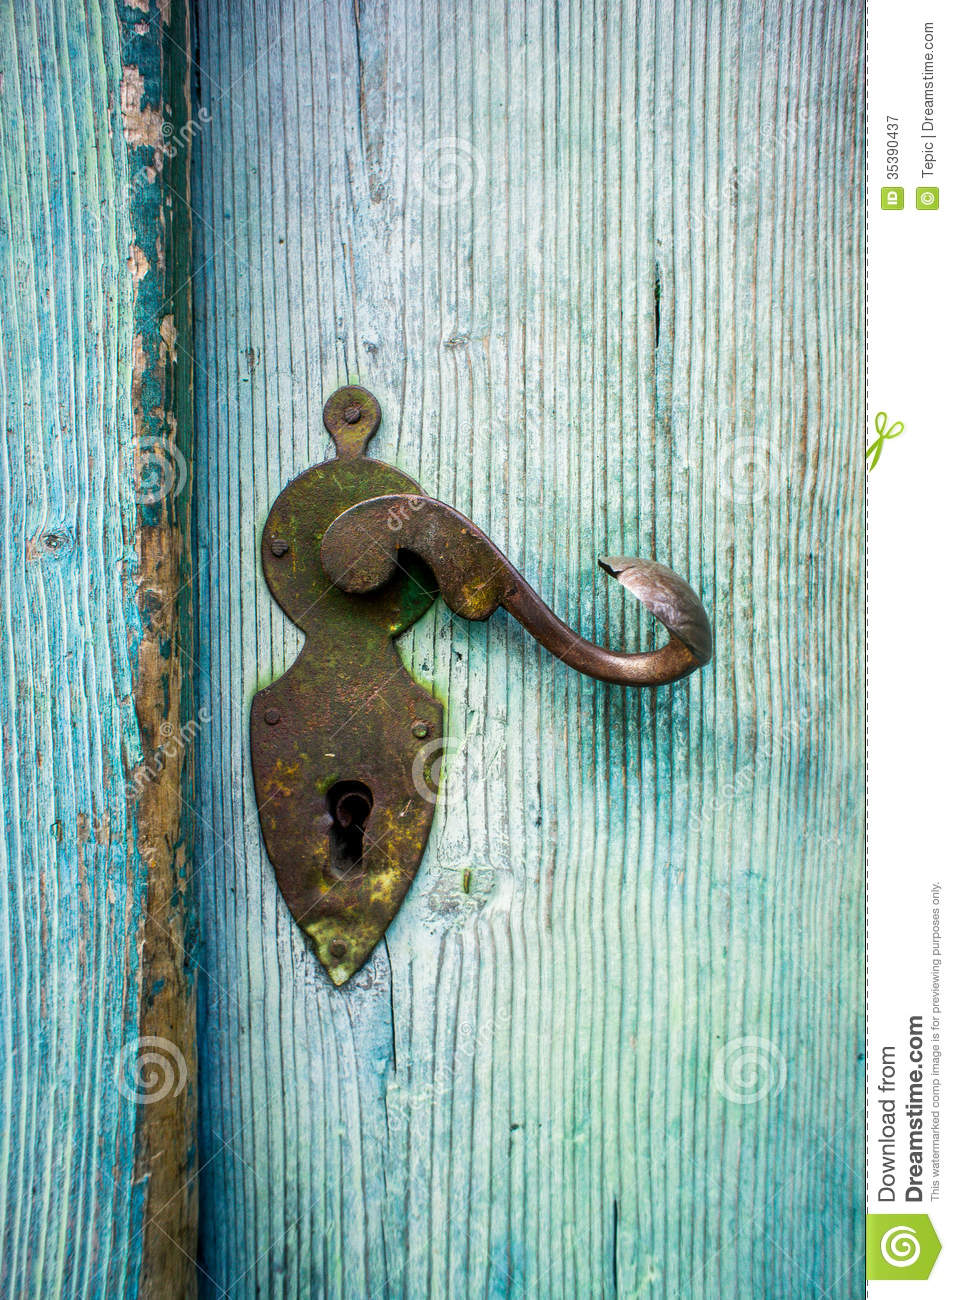 Antique Doorknob Royalty Free Stock Photography Image 35390437